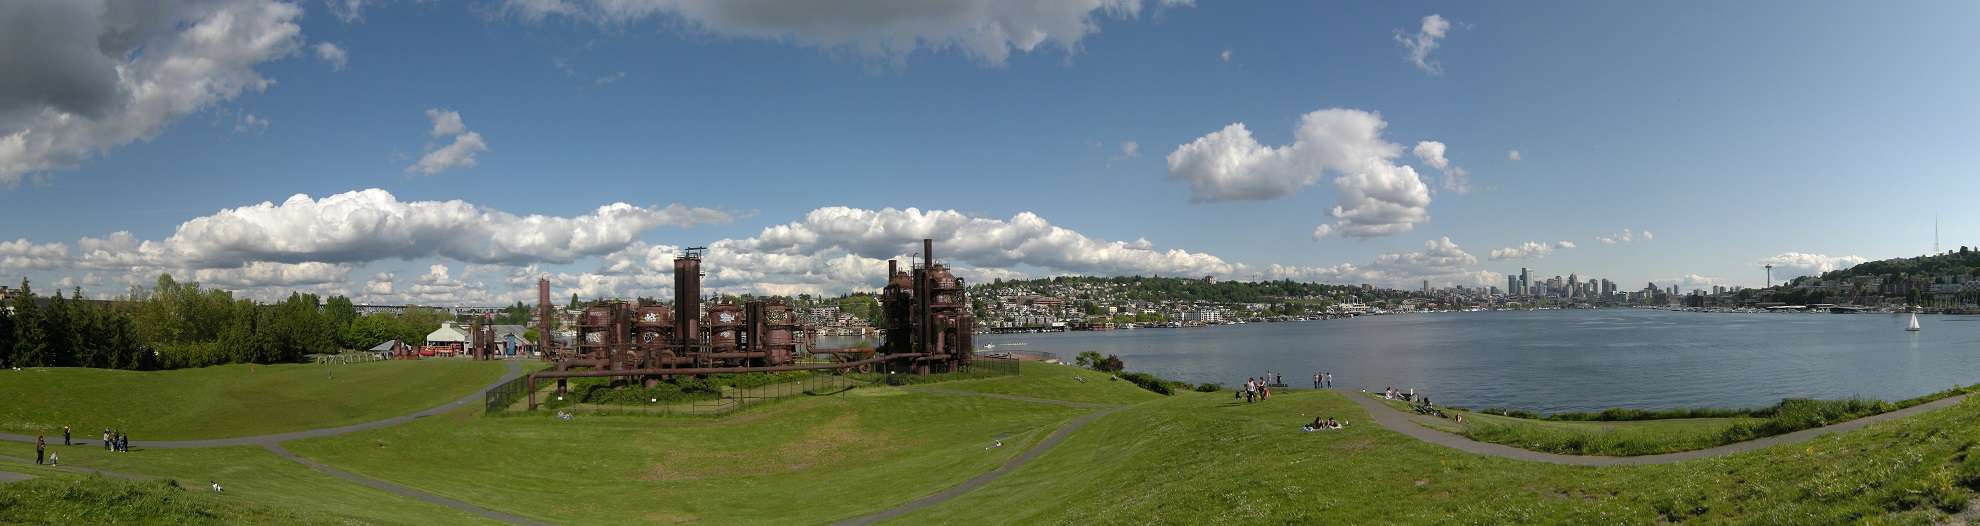 Gas_Works_pano_compressed